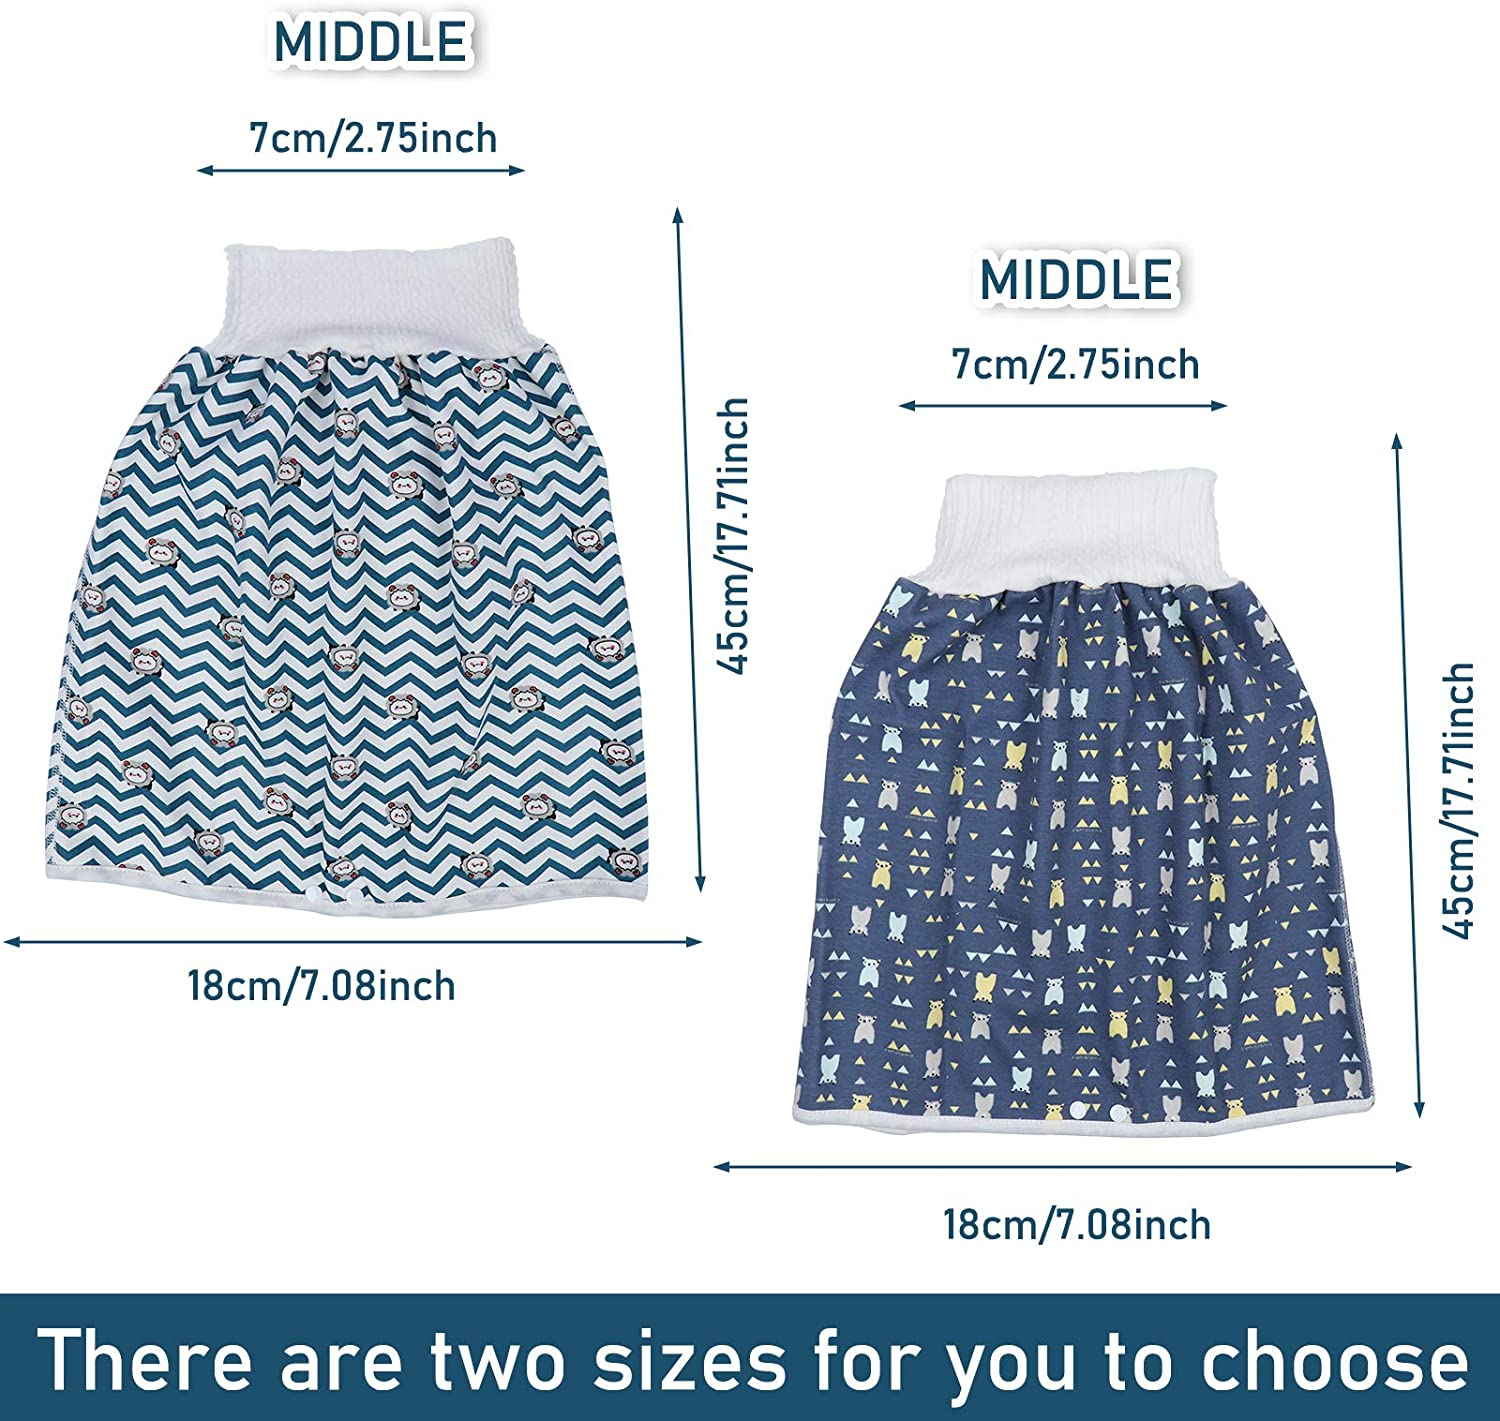 2 Packs Unisex Baby Waterproof Diaper Skirt for Potty Training Baby Reusable Sleeping Bed Clothes Diaper Skirt for Boys and Girls Toddler Night Time Potty Training